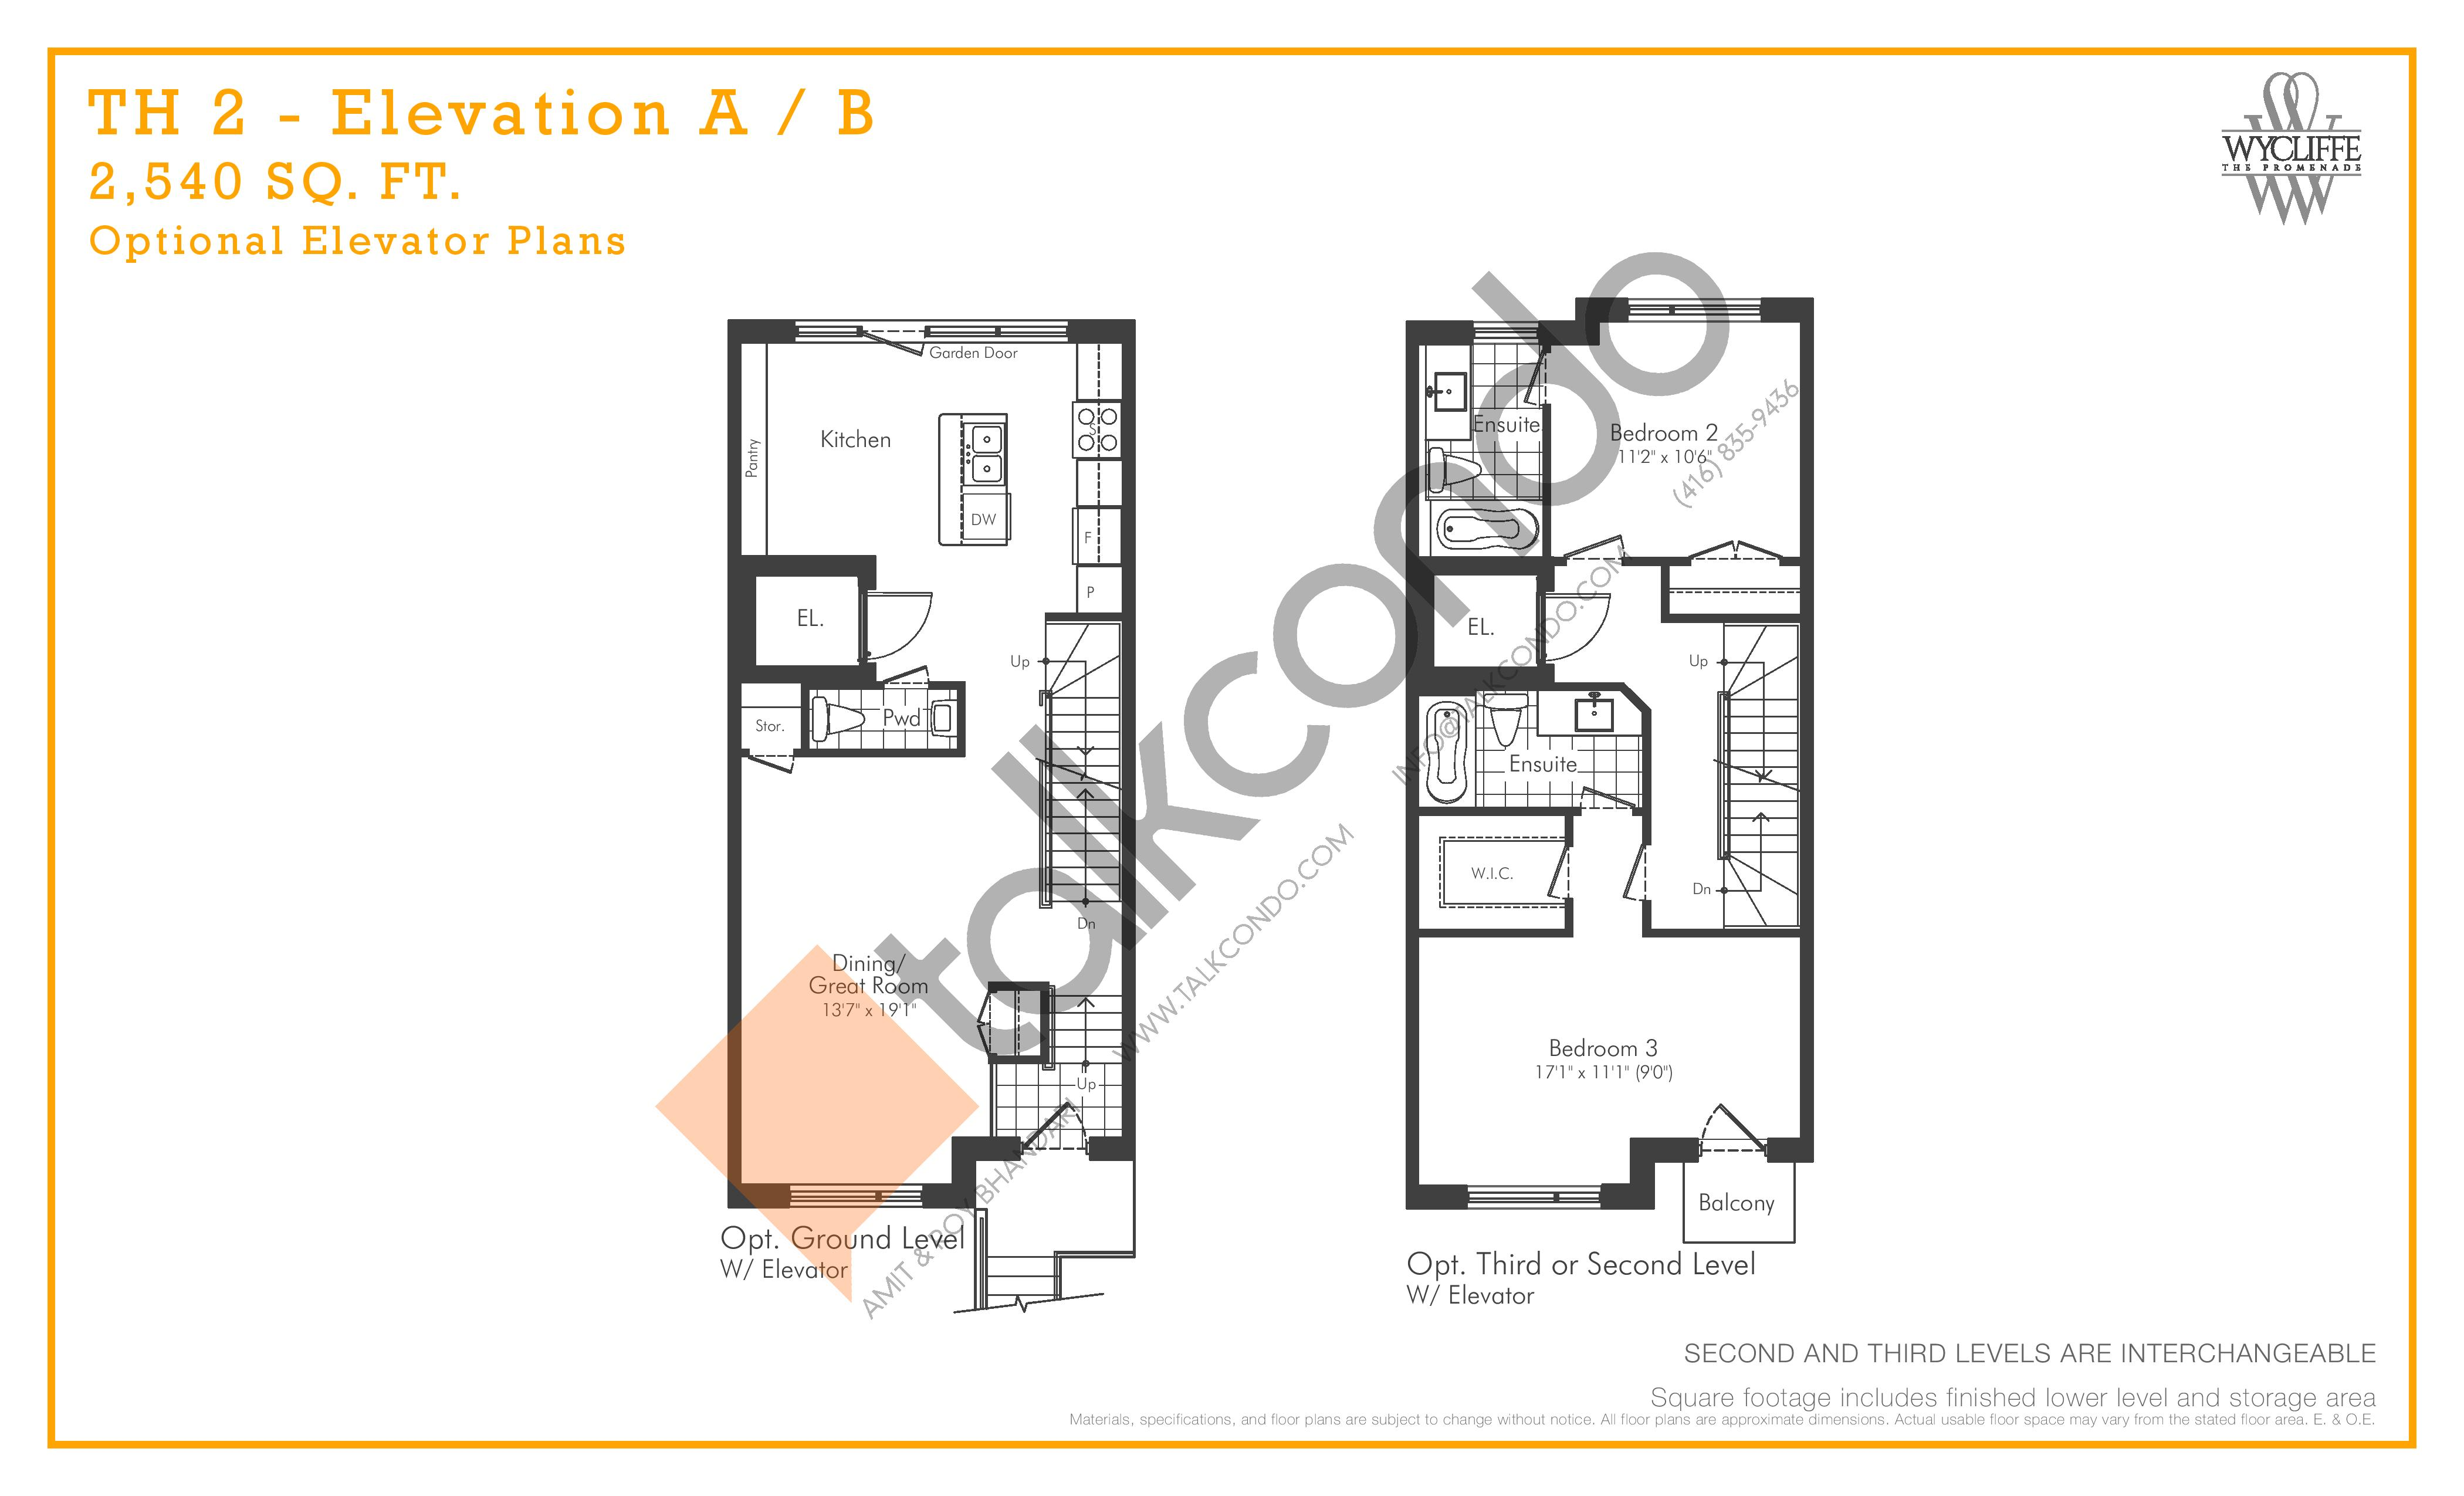 TH 2 - Elevation A/B Optional Elevator Plans Floor Plan at Wycliffe at the Promenade - 2540 sq.ft